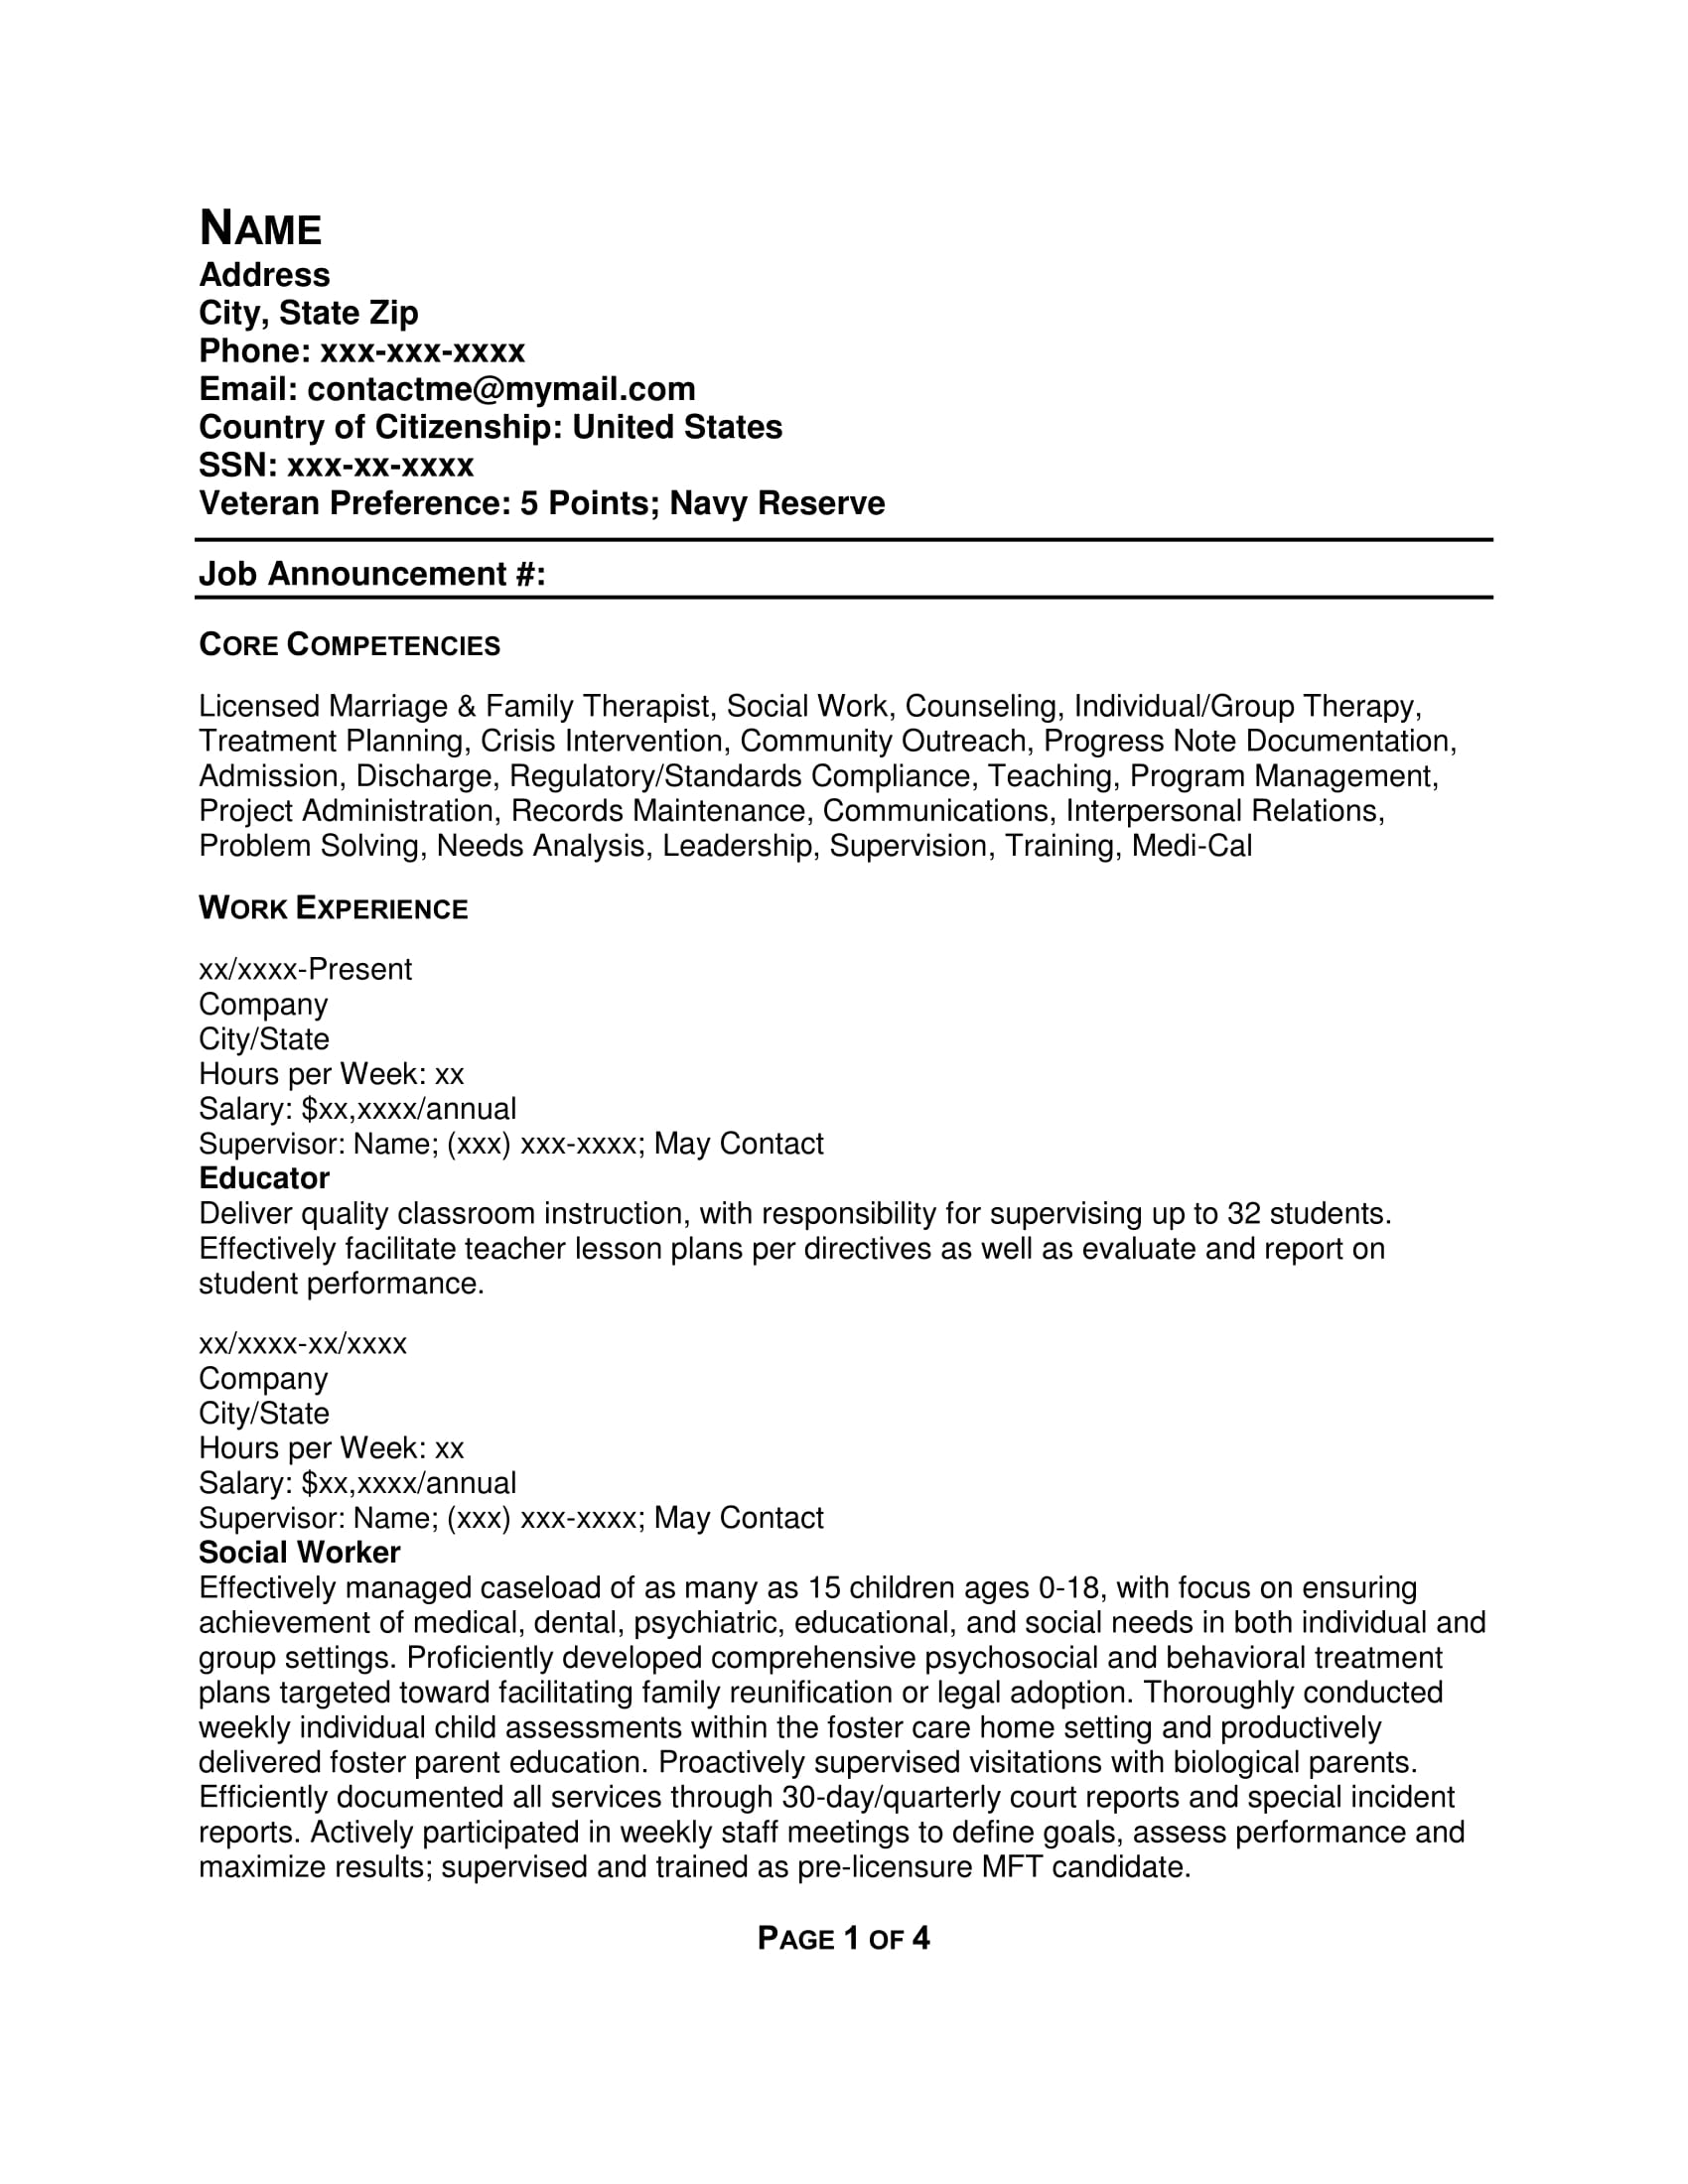 Free Resume Samples | Resume Writing Group